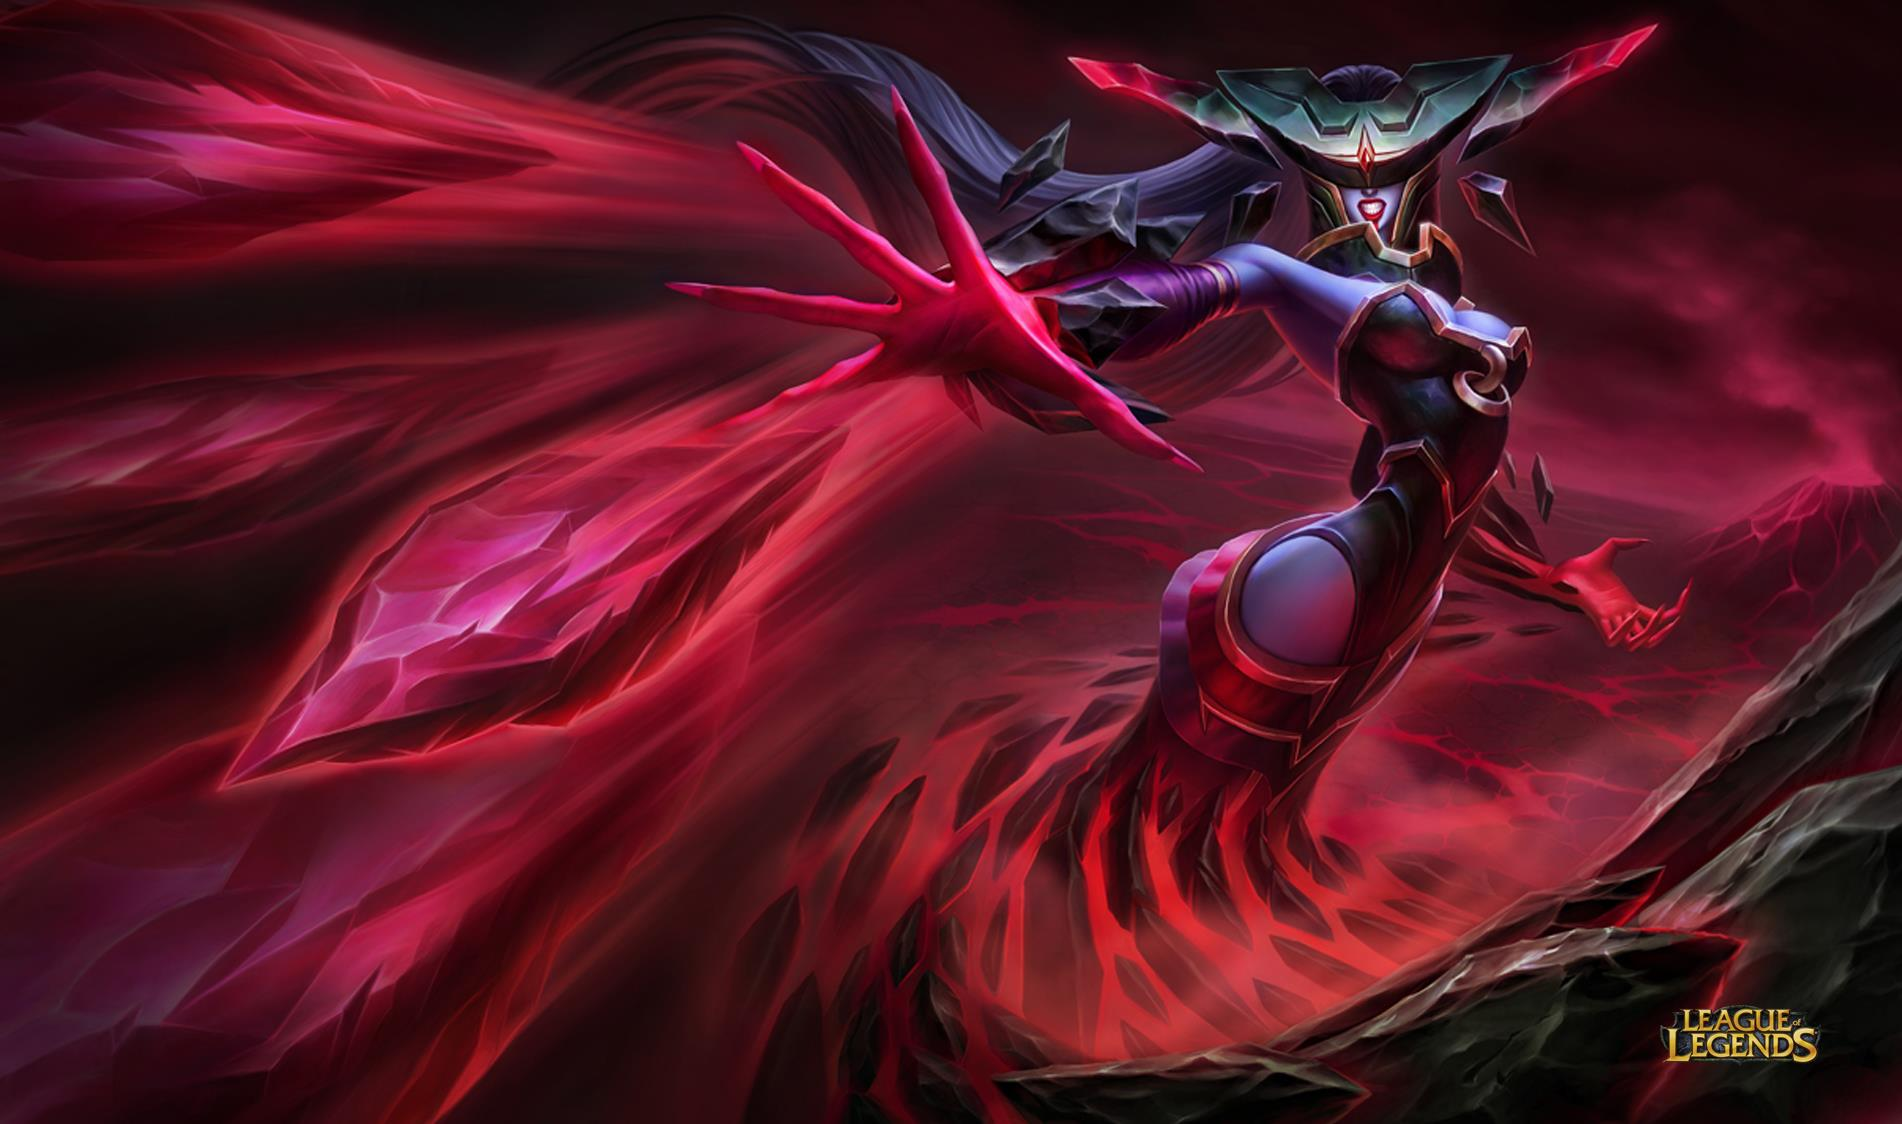 League of Legends wallpaper 60